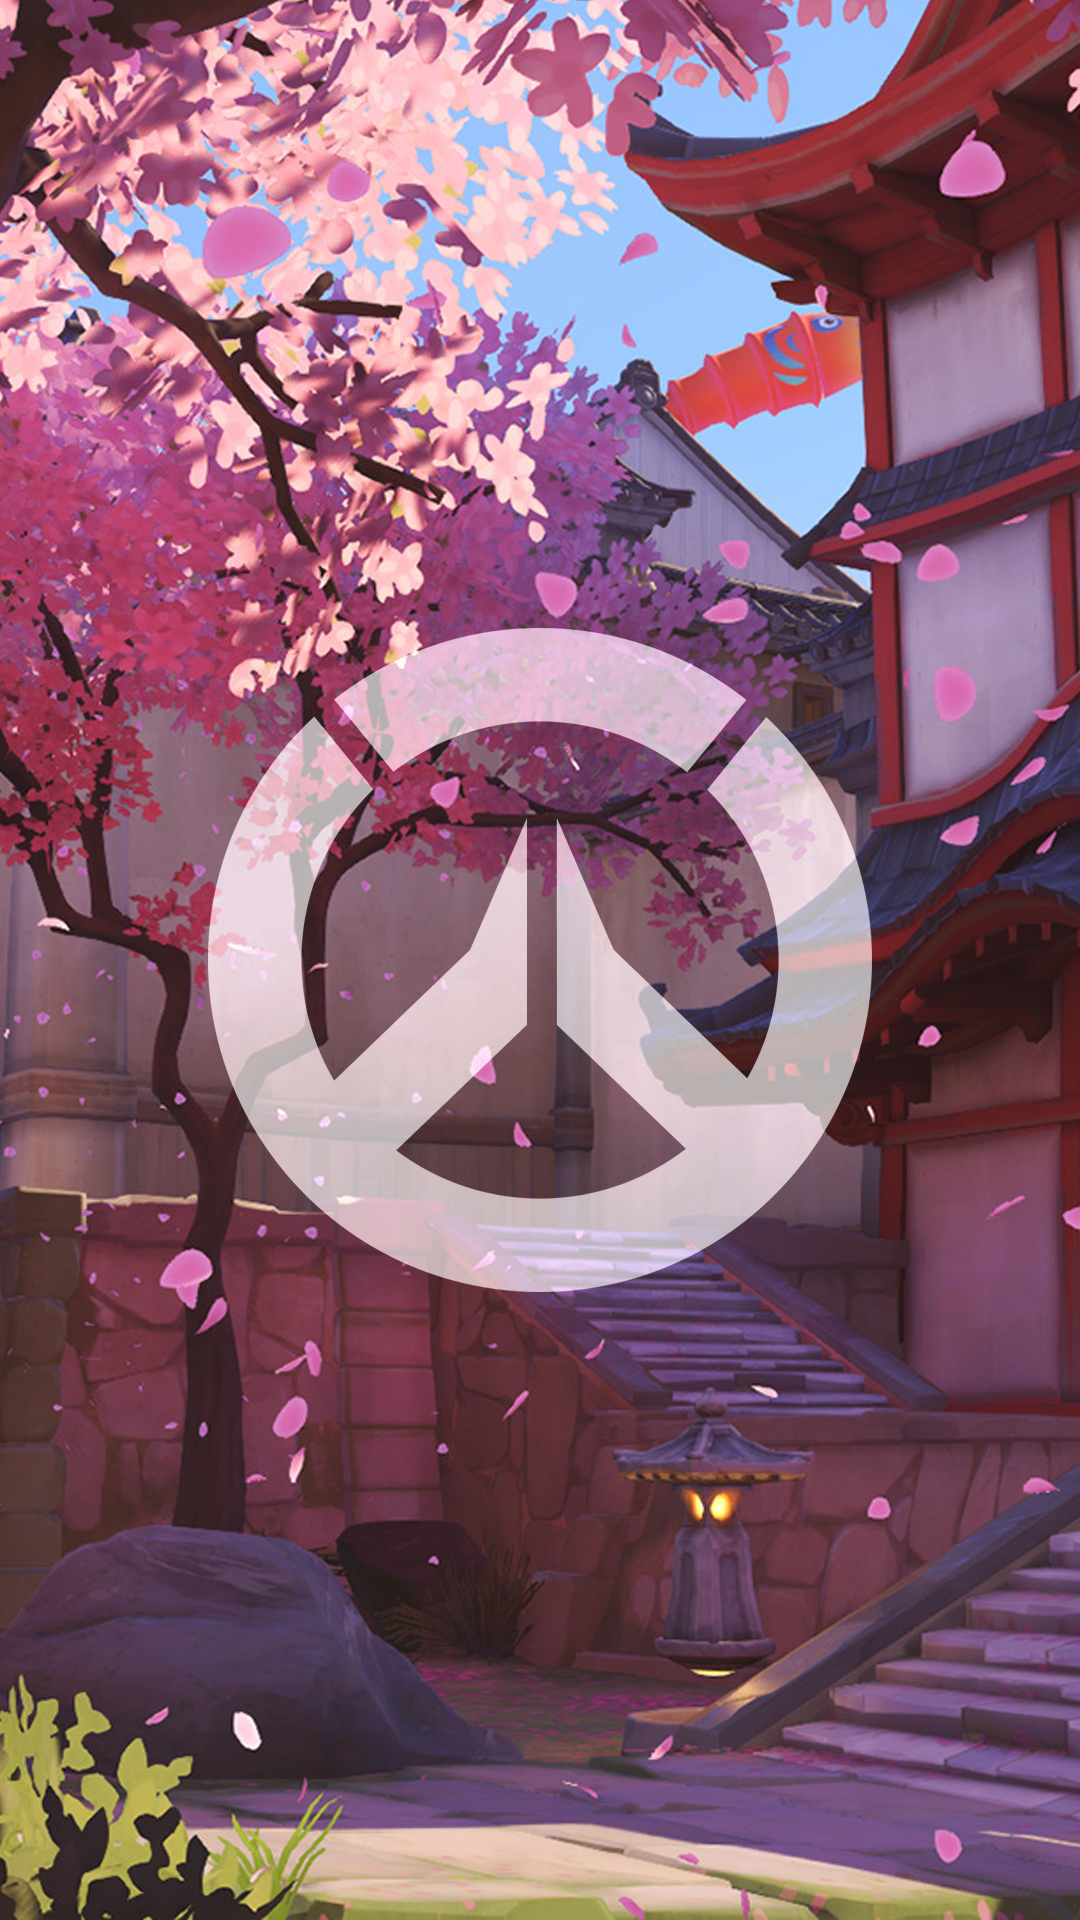 Overwatch Phone Wallpapers Overwatch Wallpapers Overwatch Phone Wallpaper Overwatch